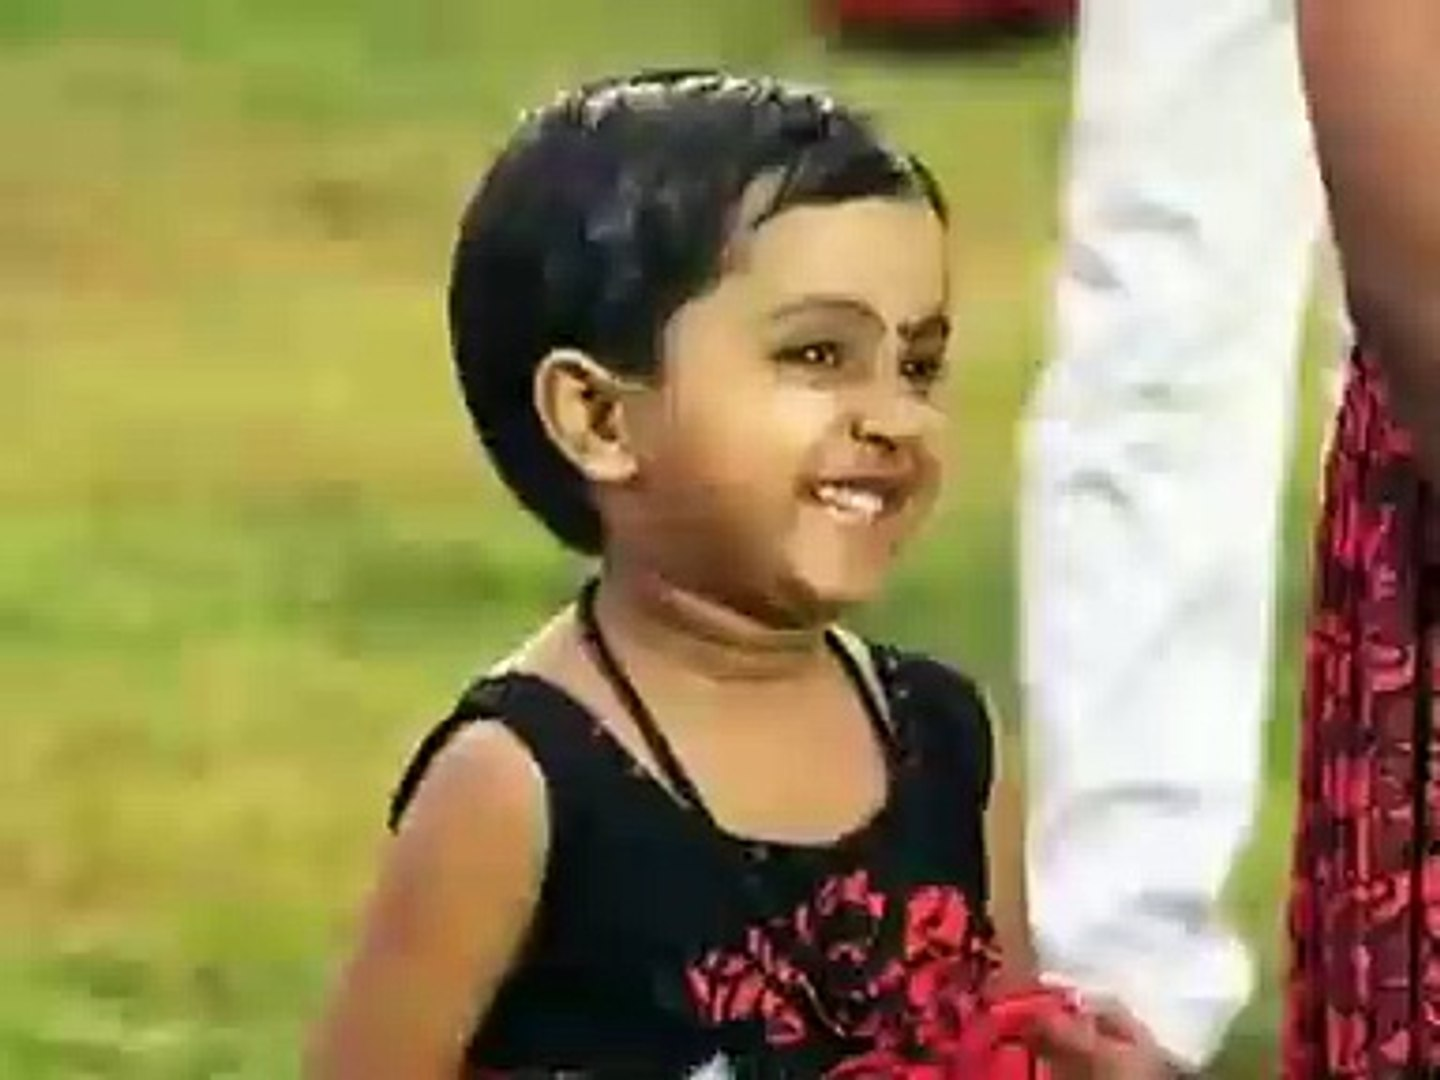 cute baby cute expression awesome smile video